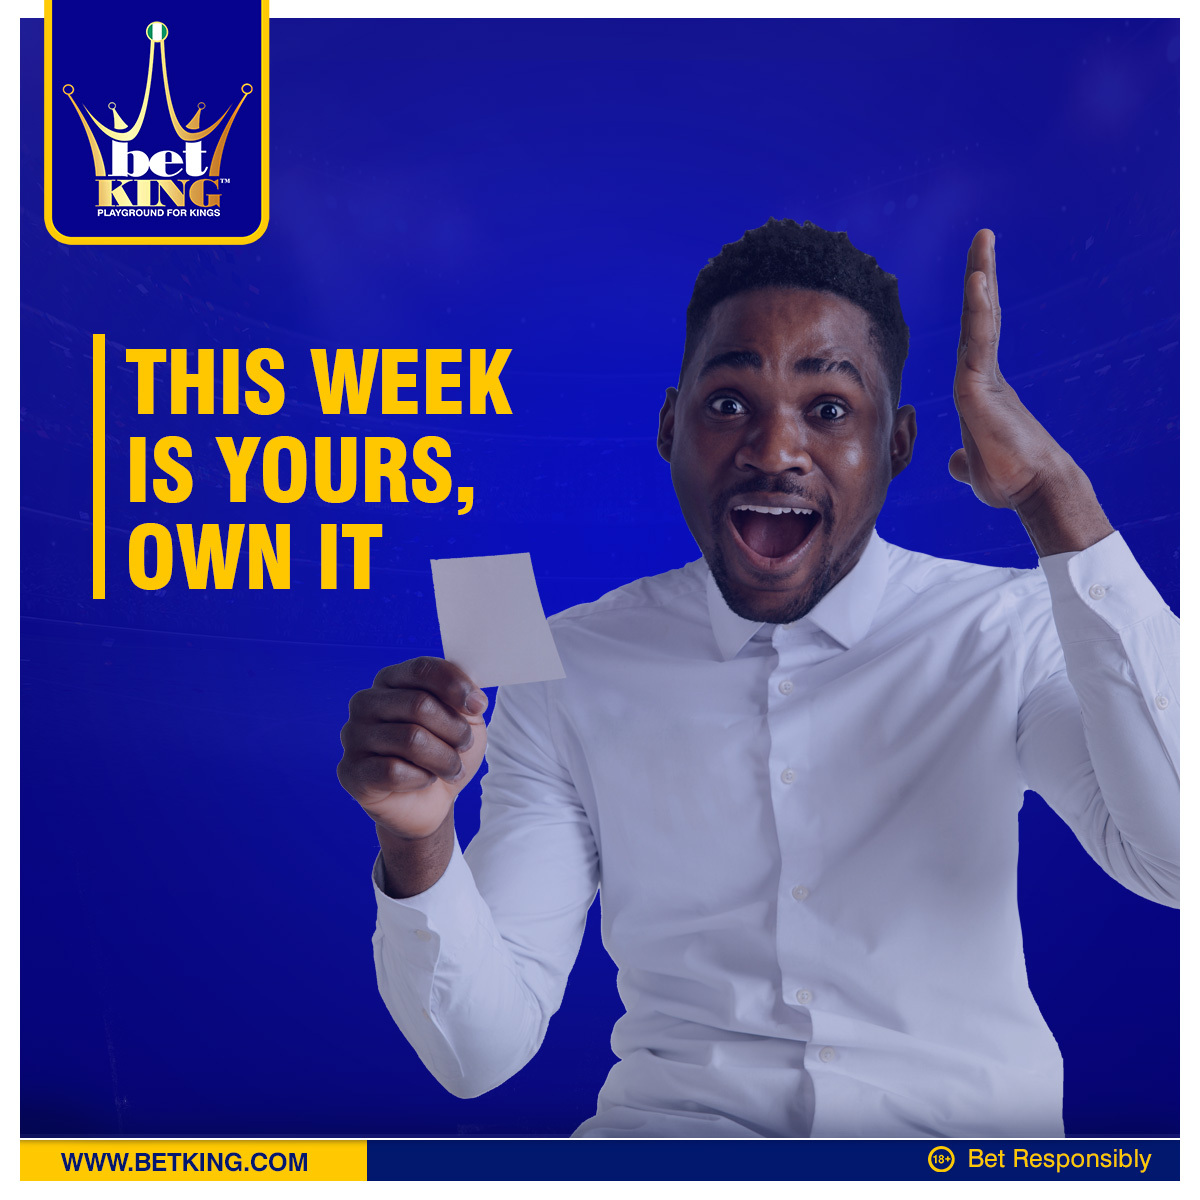 Just a reaffirmation that this week is your week Kings.  All you need to do is own it.  #MondayMotivation #PlaygroundForKings https://t.co/5qSaYTwtwL